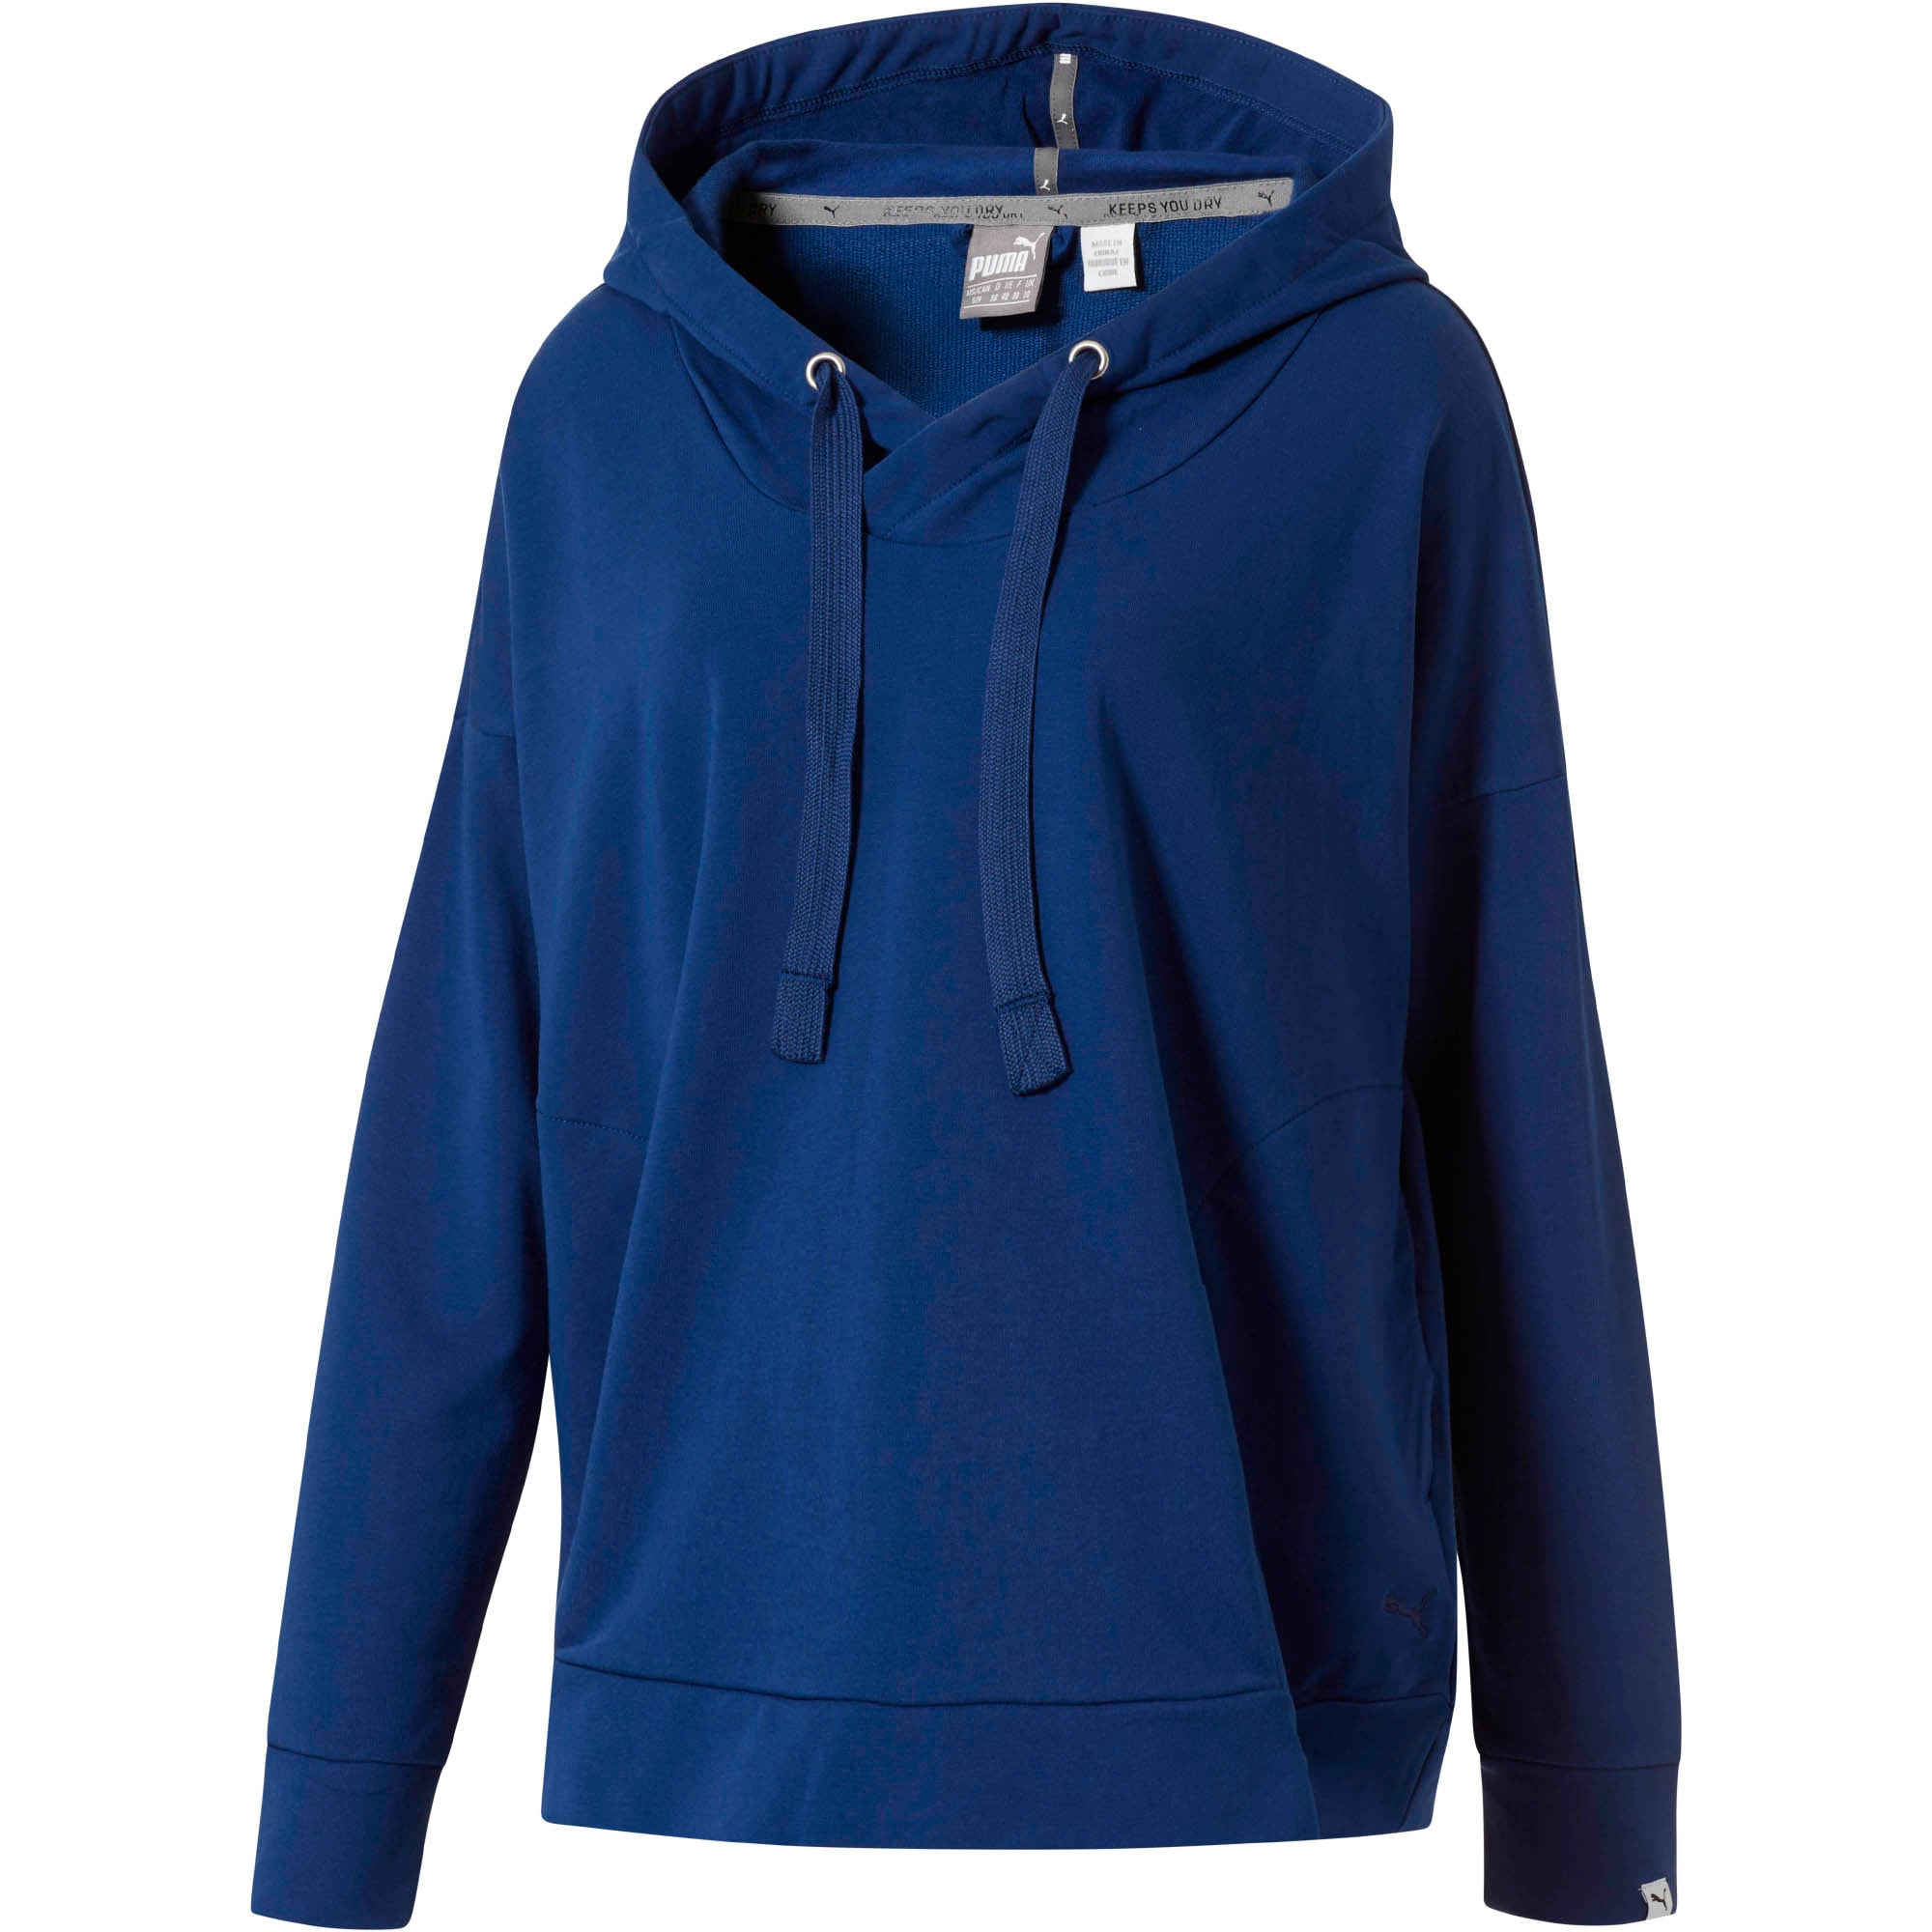 Fusion Hoodie, Blue Depths, large